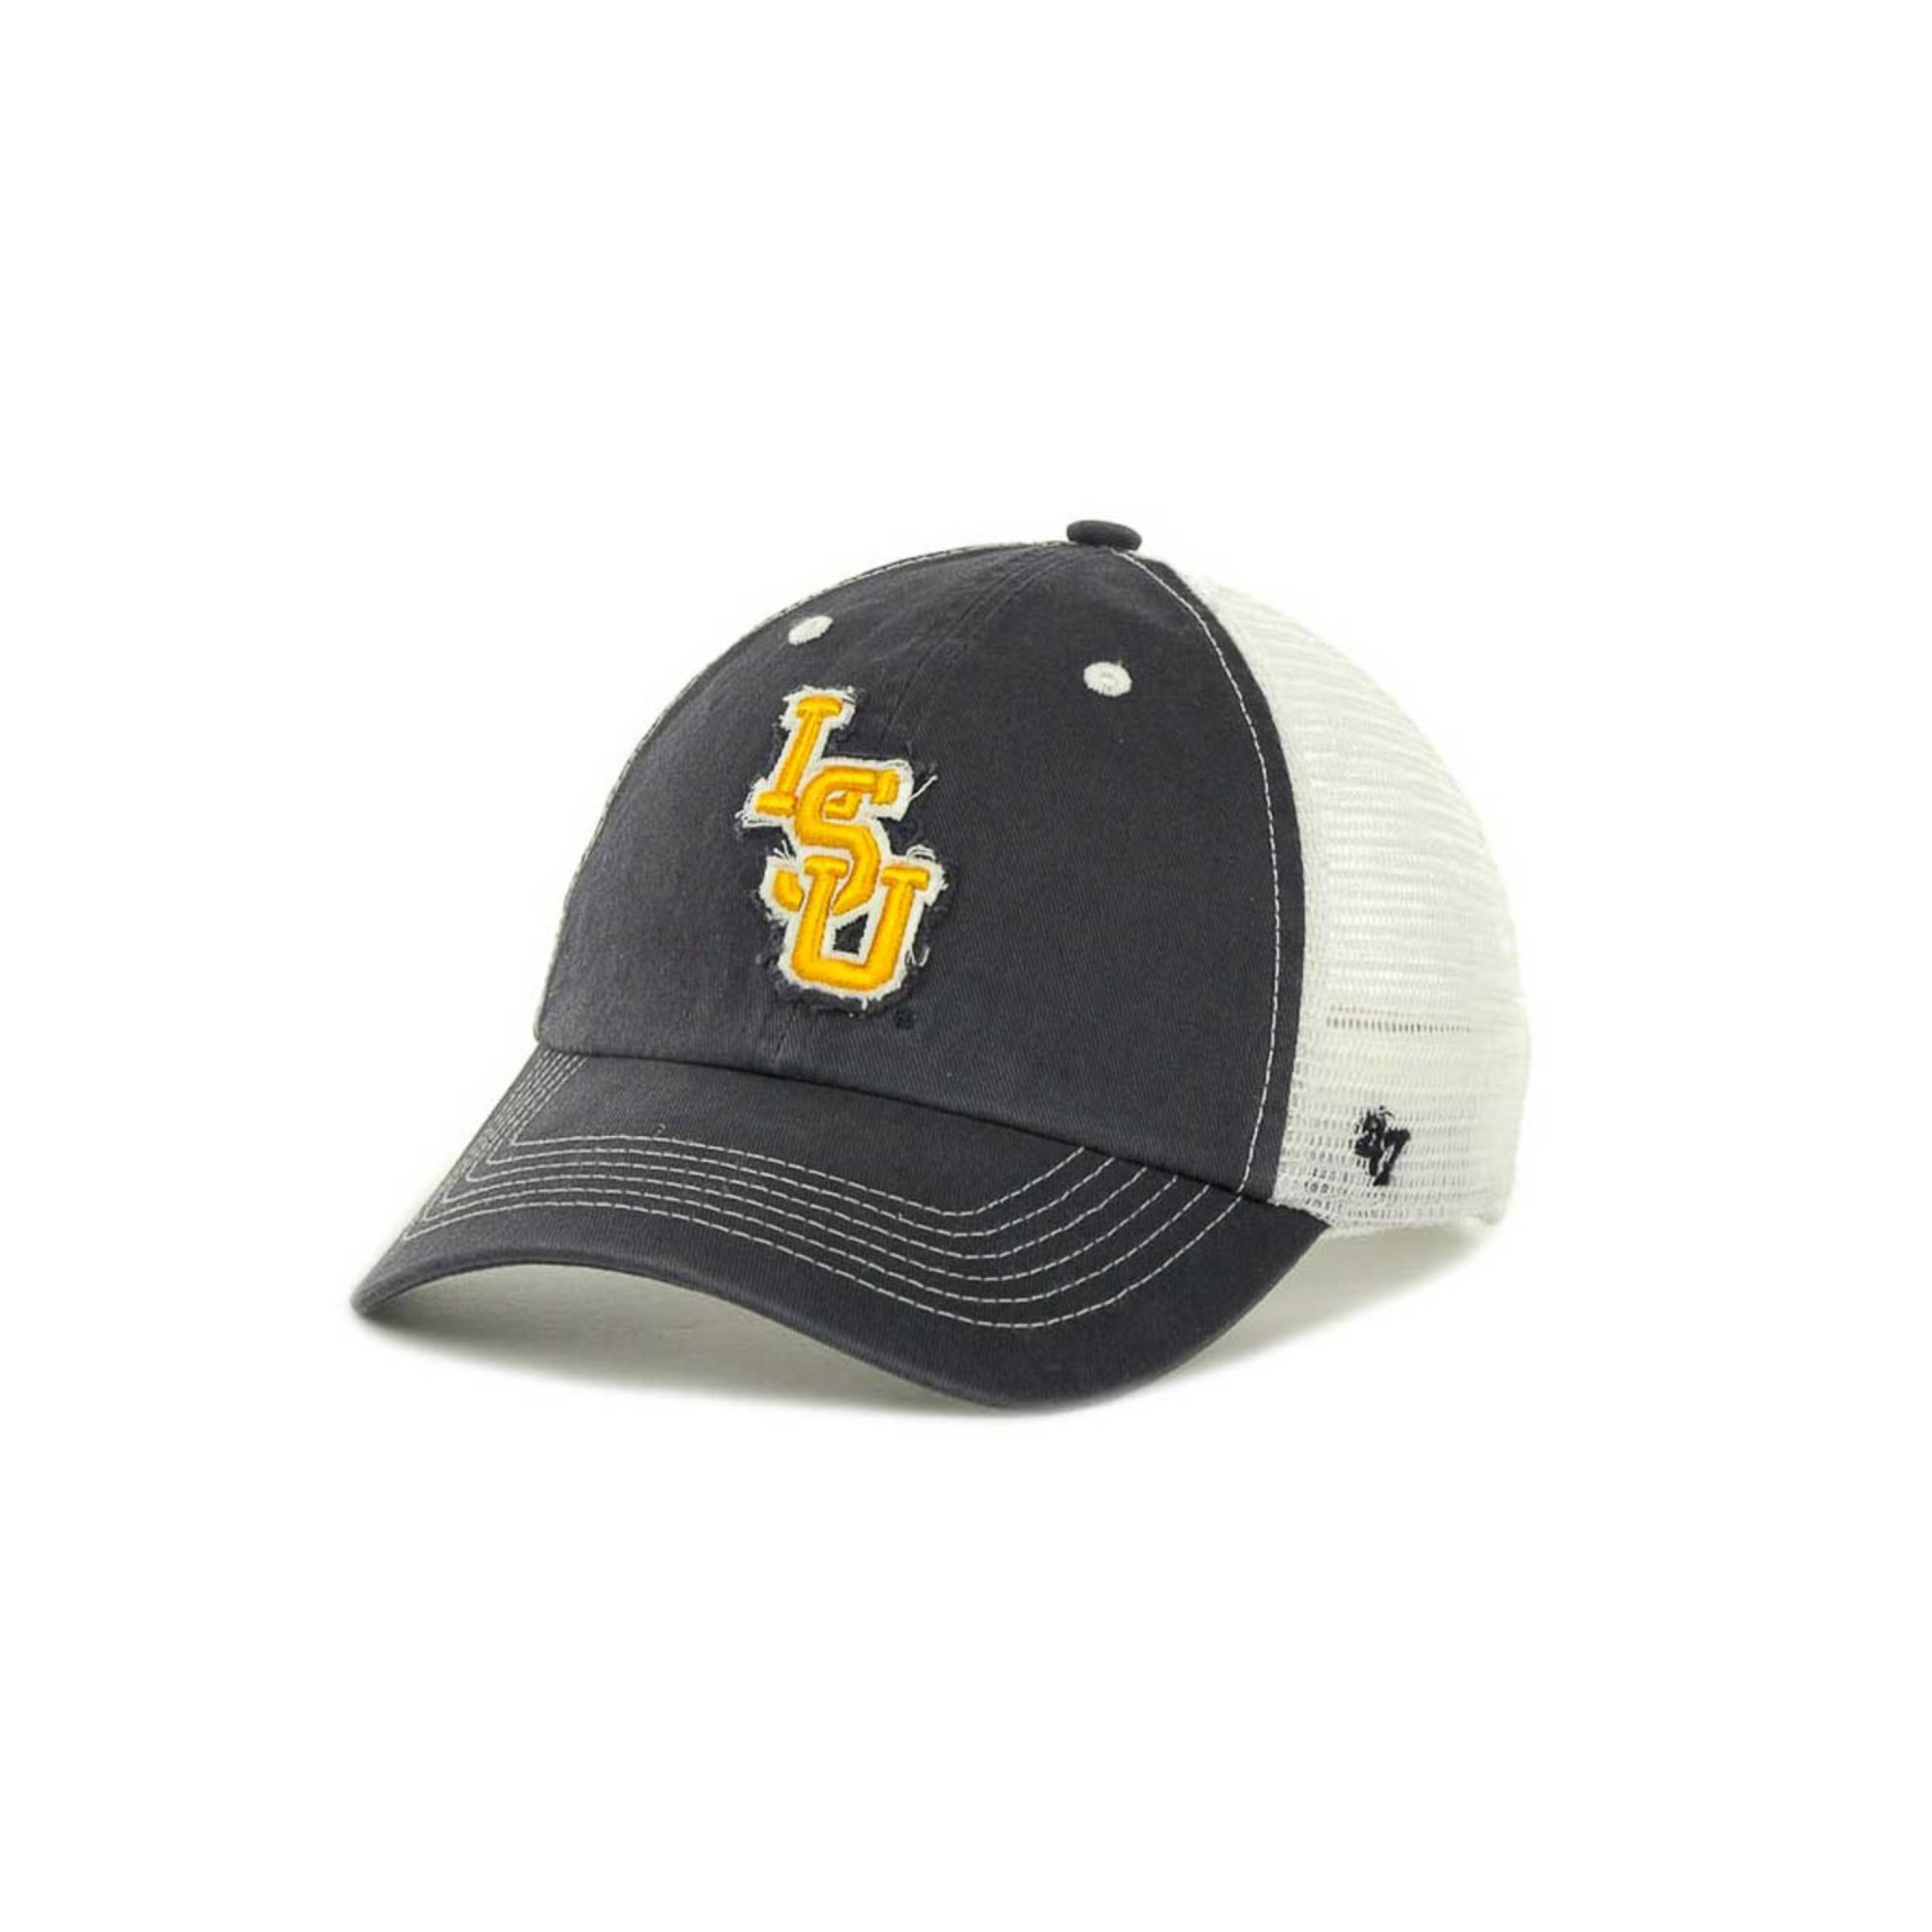 237ea4a4a8aa81 ... hat purple cfe06 11b46; greece lyst 47 brand lsu tigers ncaa blue  mountain franchise cap in blue d47c0 0828e